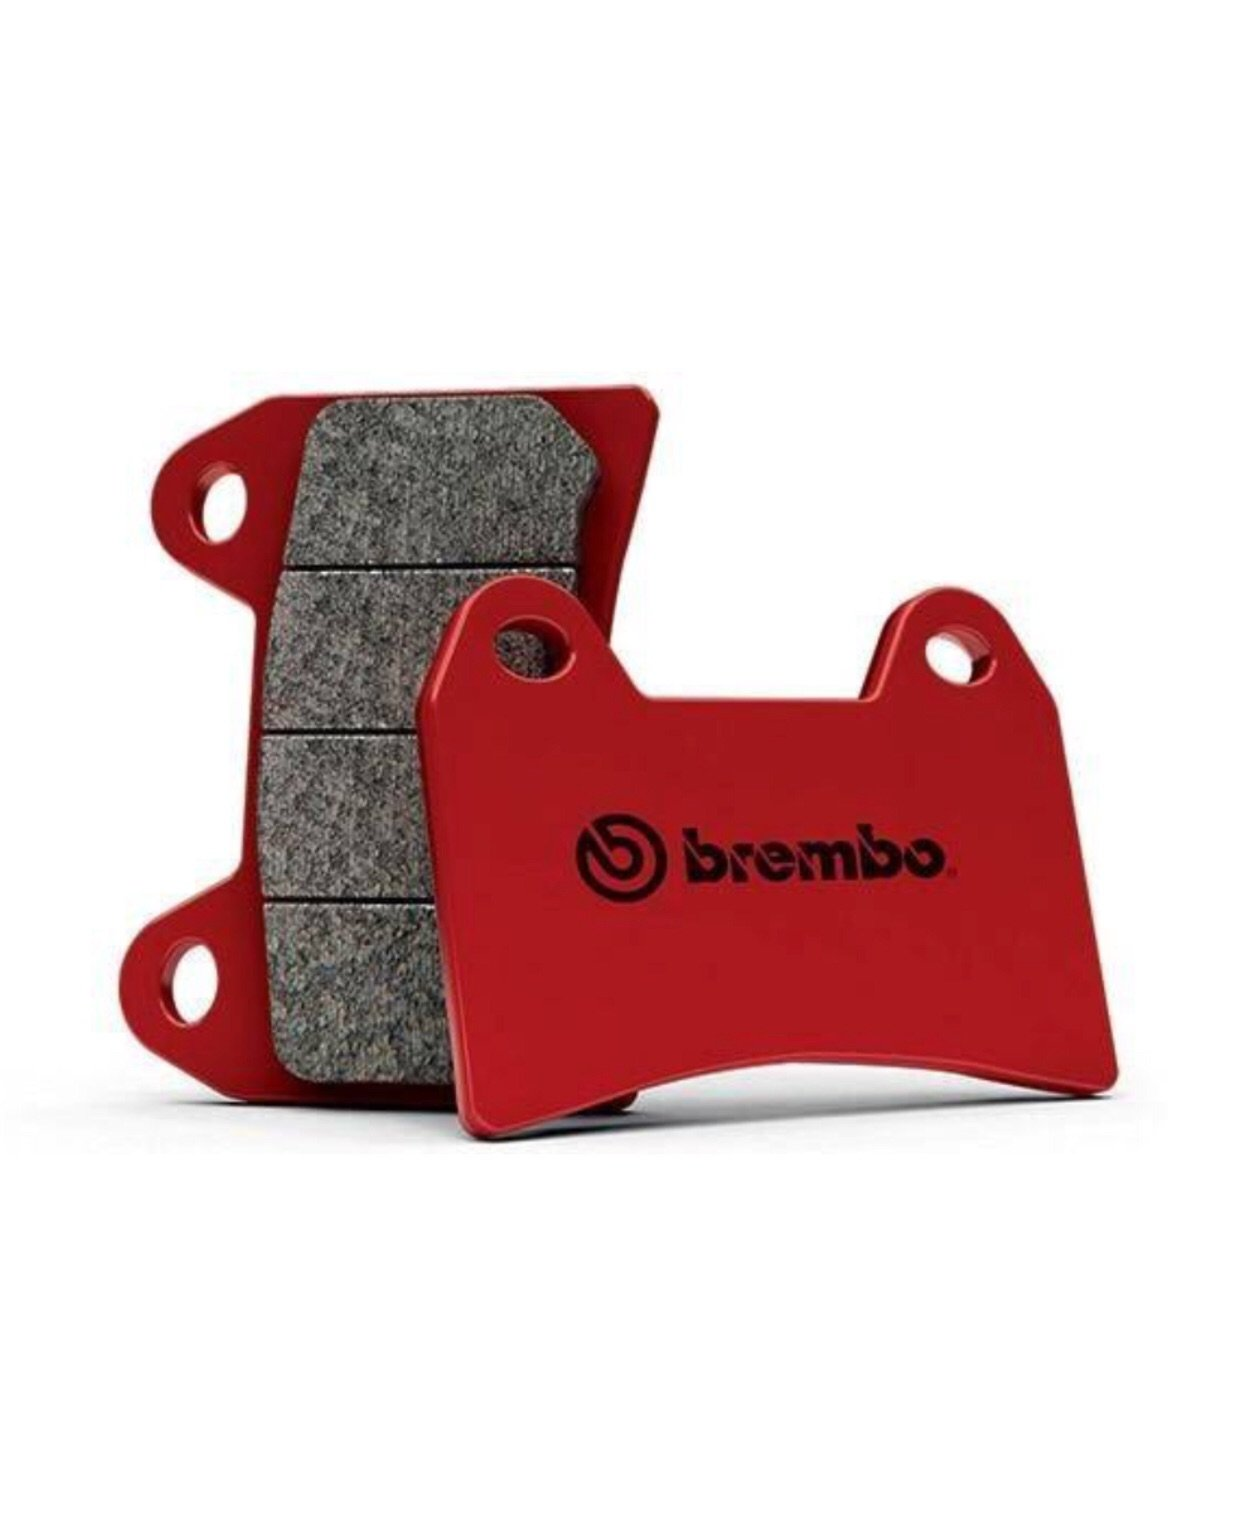 Ducati, Brake Pads, Brembo - Race and Trackday Parts